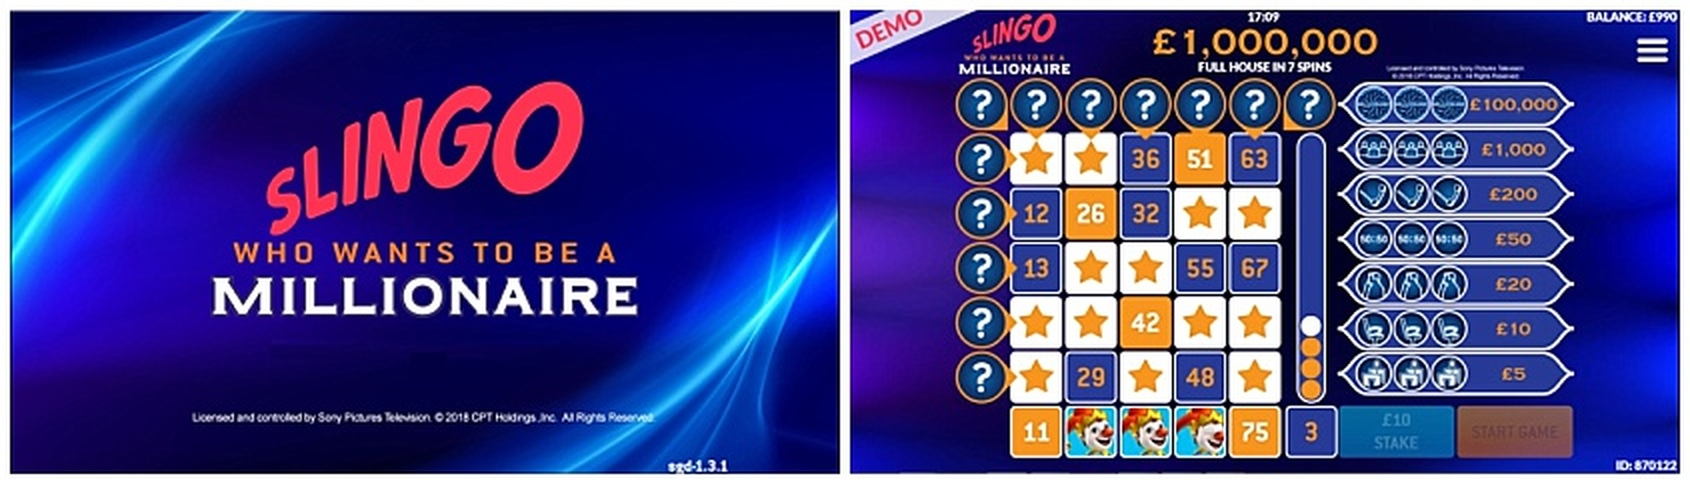 The Slingo Who Wants to be a Millionaire Online Slot Demo Game by Slingo